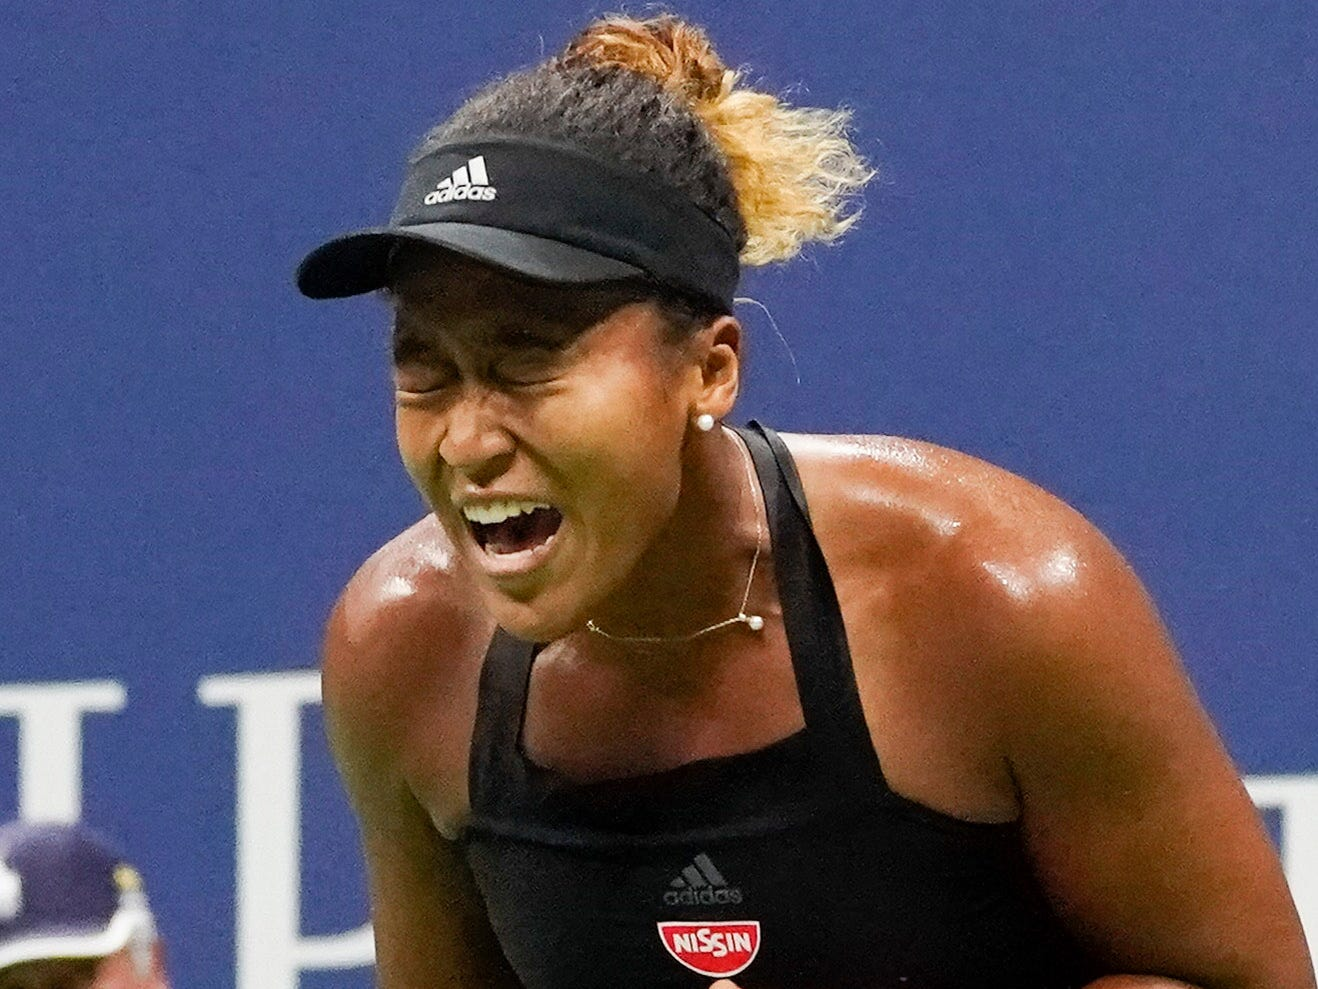 Naomi Osaka, who defeated Madison Keys 6-2, 6-4, earned a meeting with Serena Williams in the final.